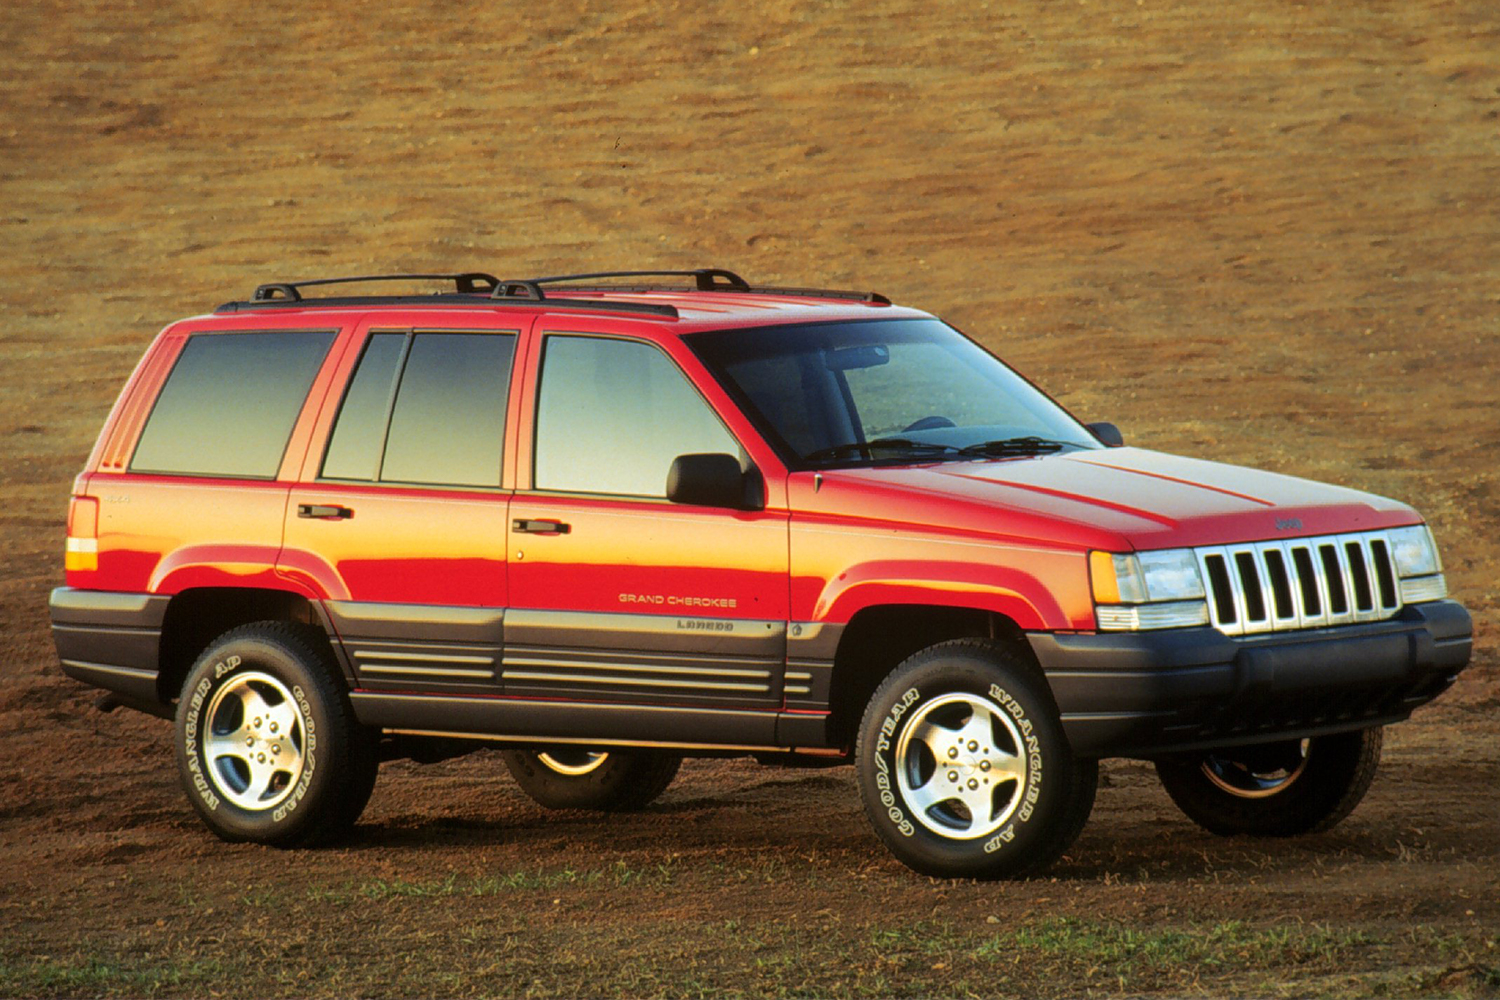 A 1996 Jeep Grand Cherokee Laredo in red sitting on the dirt in a vintage photo